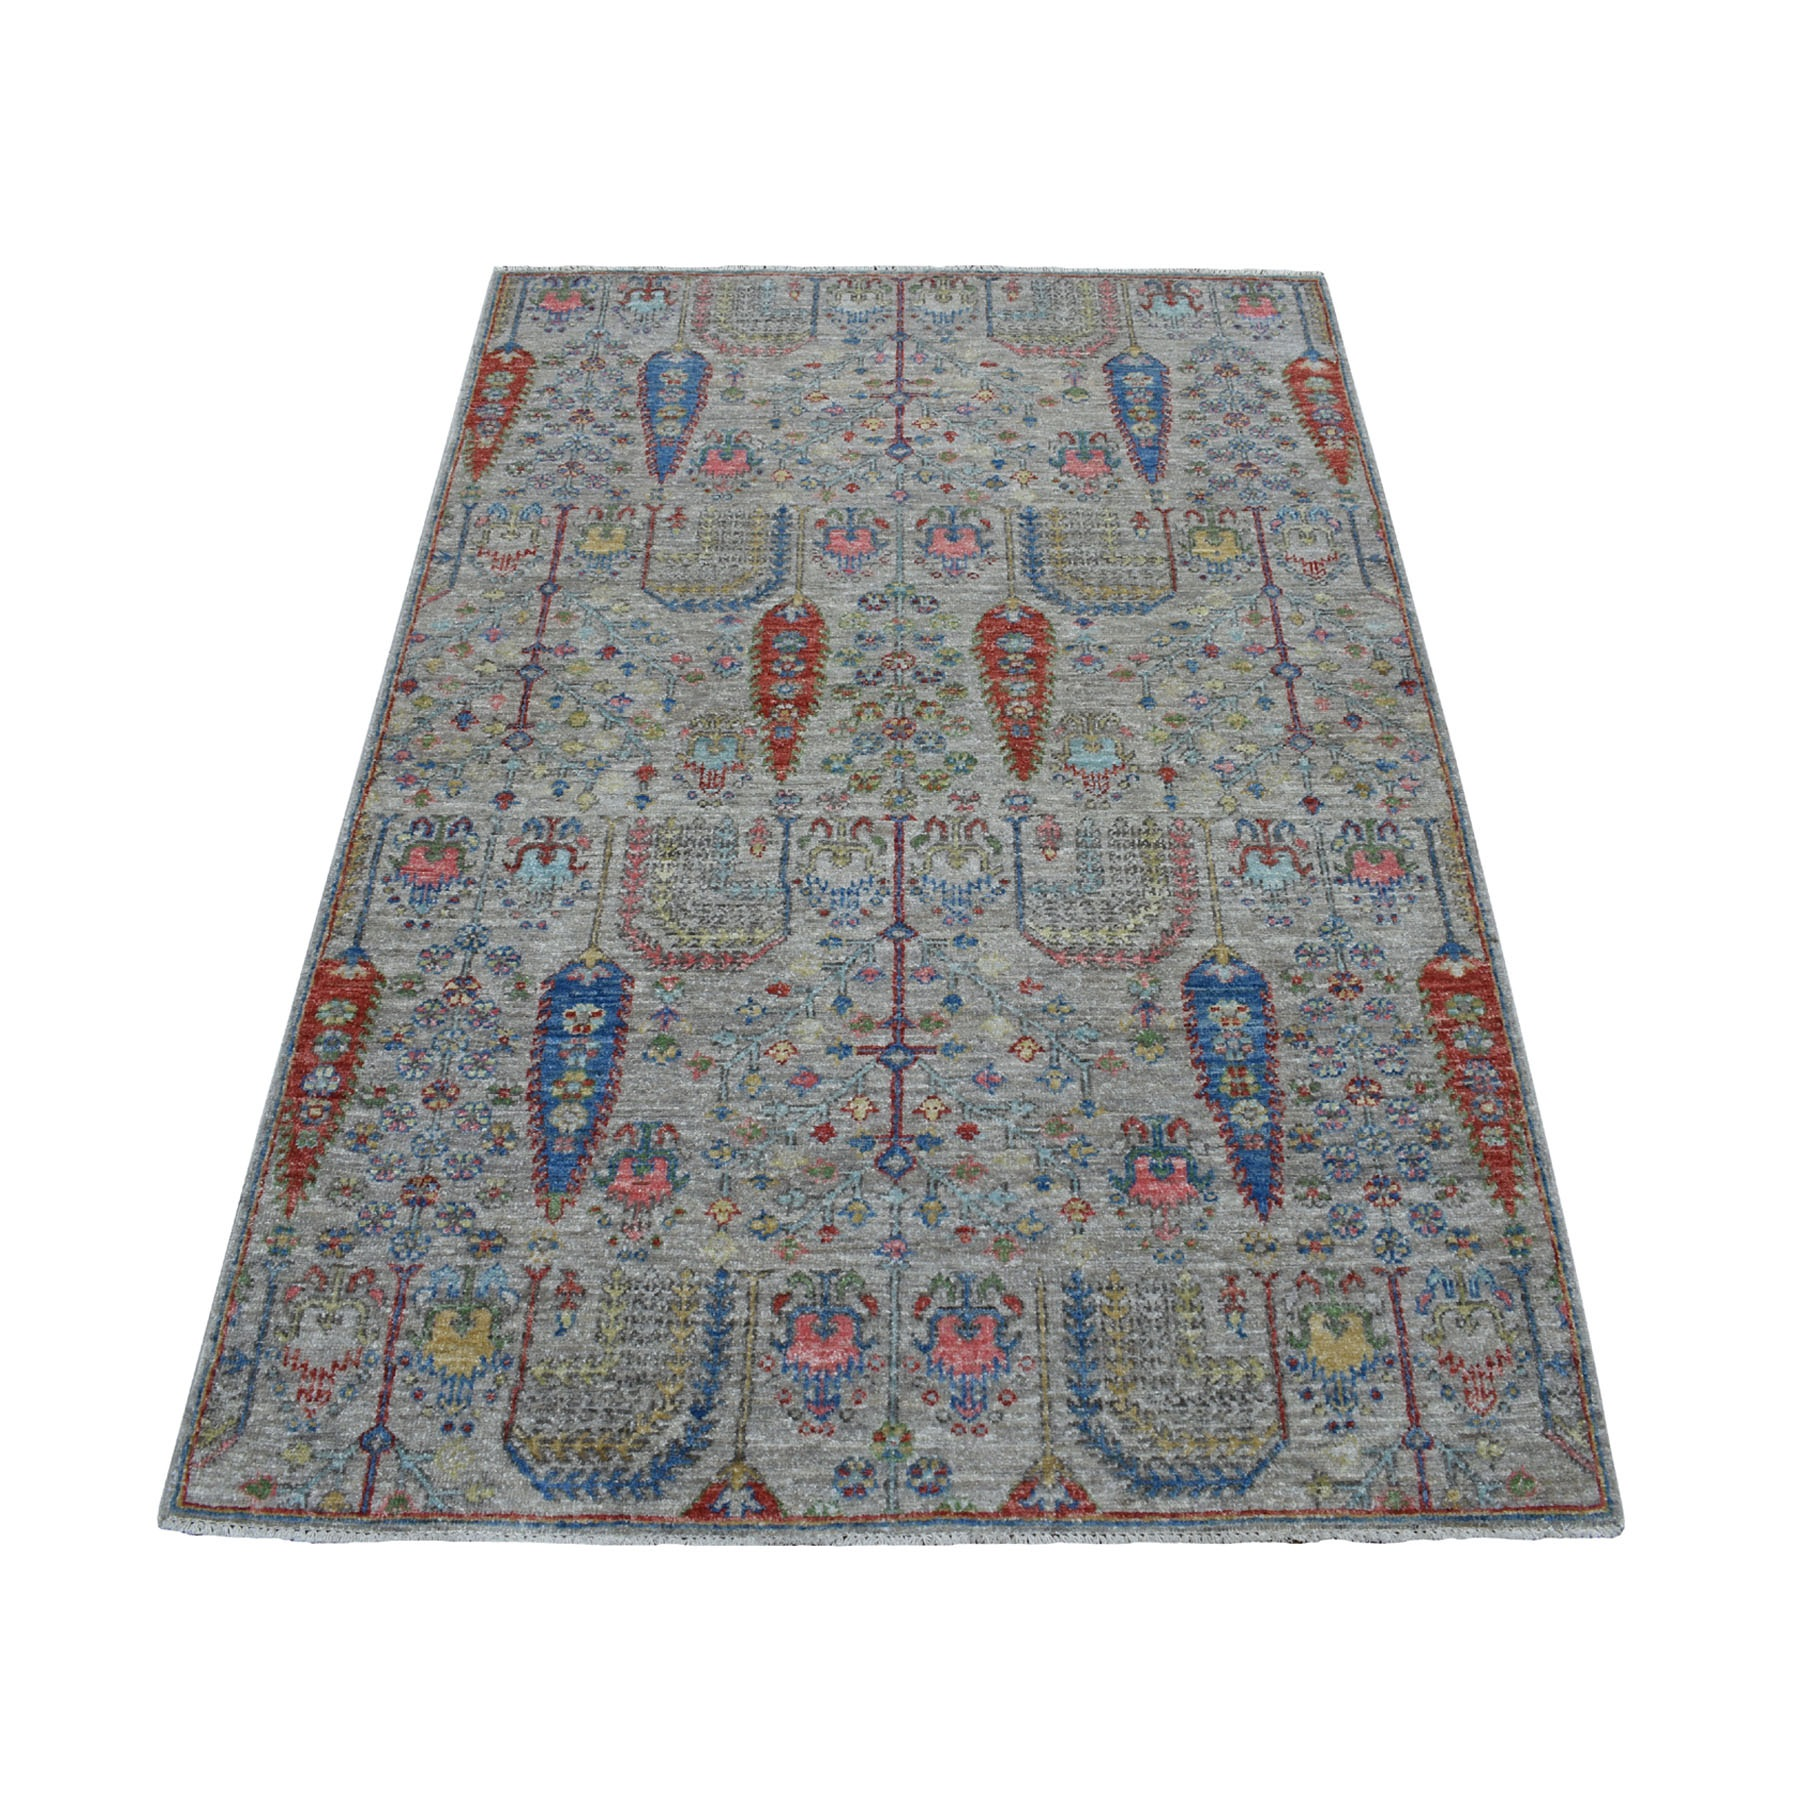 "3'9""x5'8"" Gray With Pop Of Color Willow And Cypress Tree Design Hand Woven Oriental Rug"